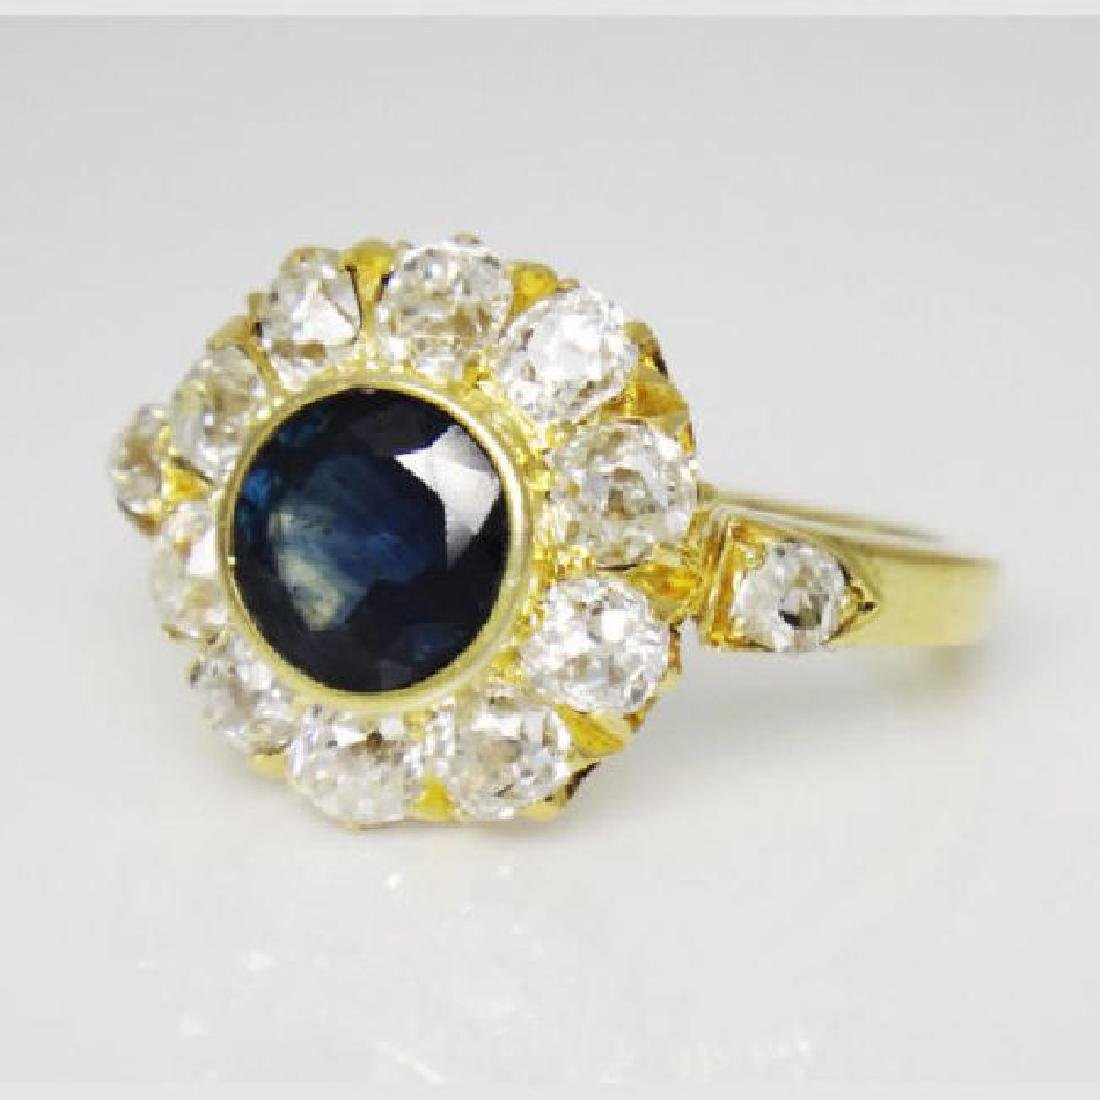 Antique Cluster 18K 2.5CT Diamond & Sapphire Ring